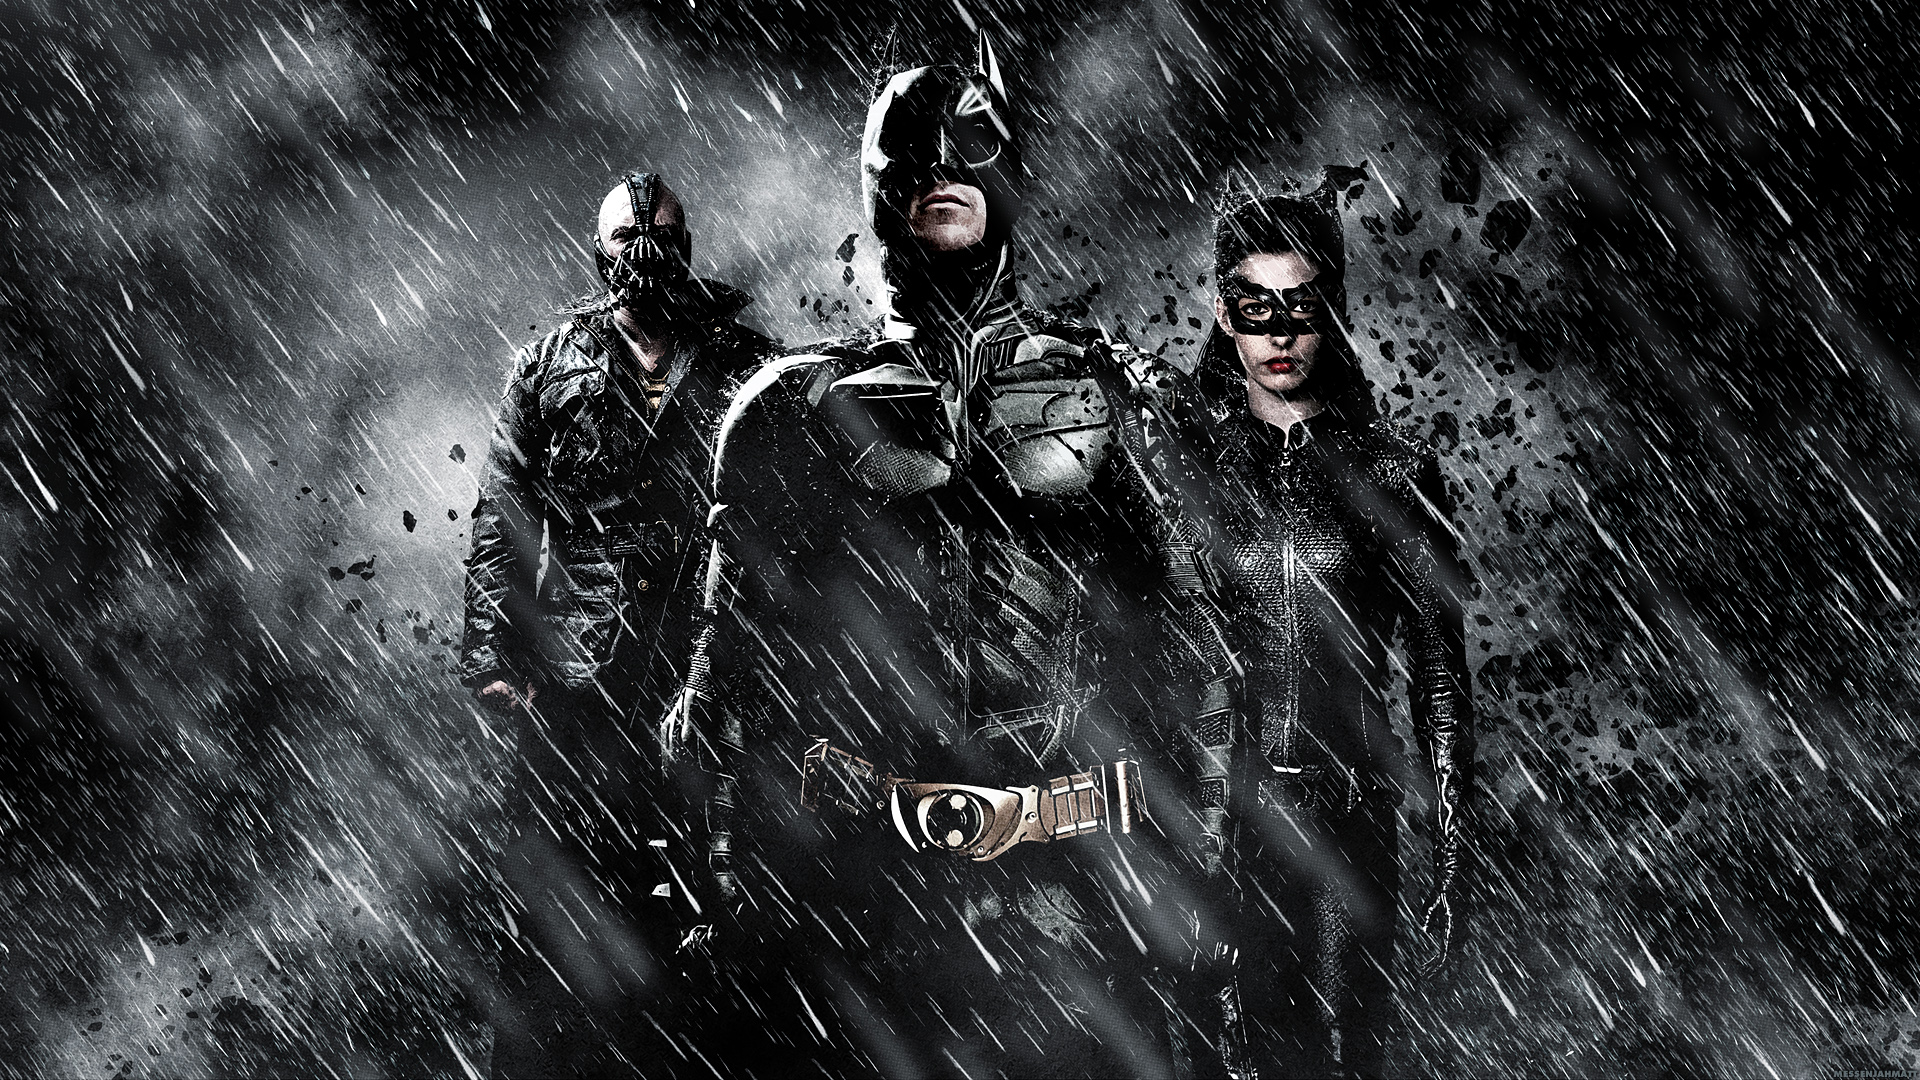 The-Dark-Knight-Rises.jpg